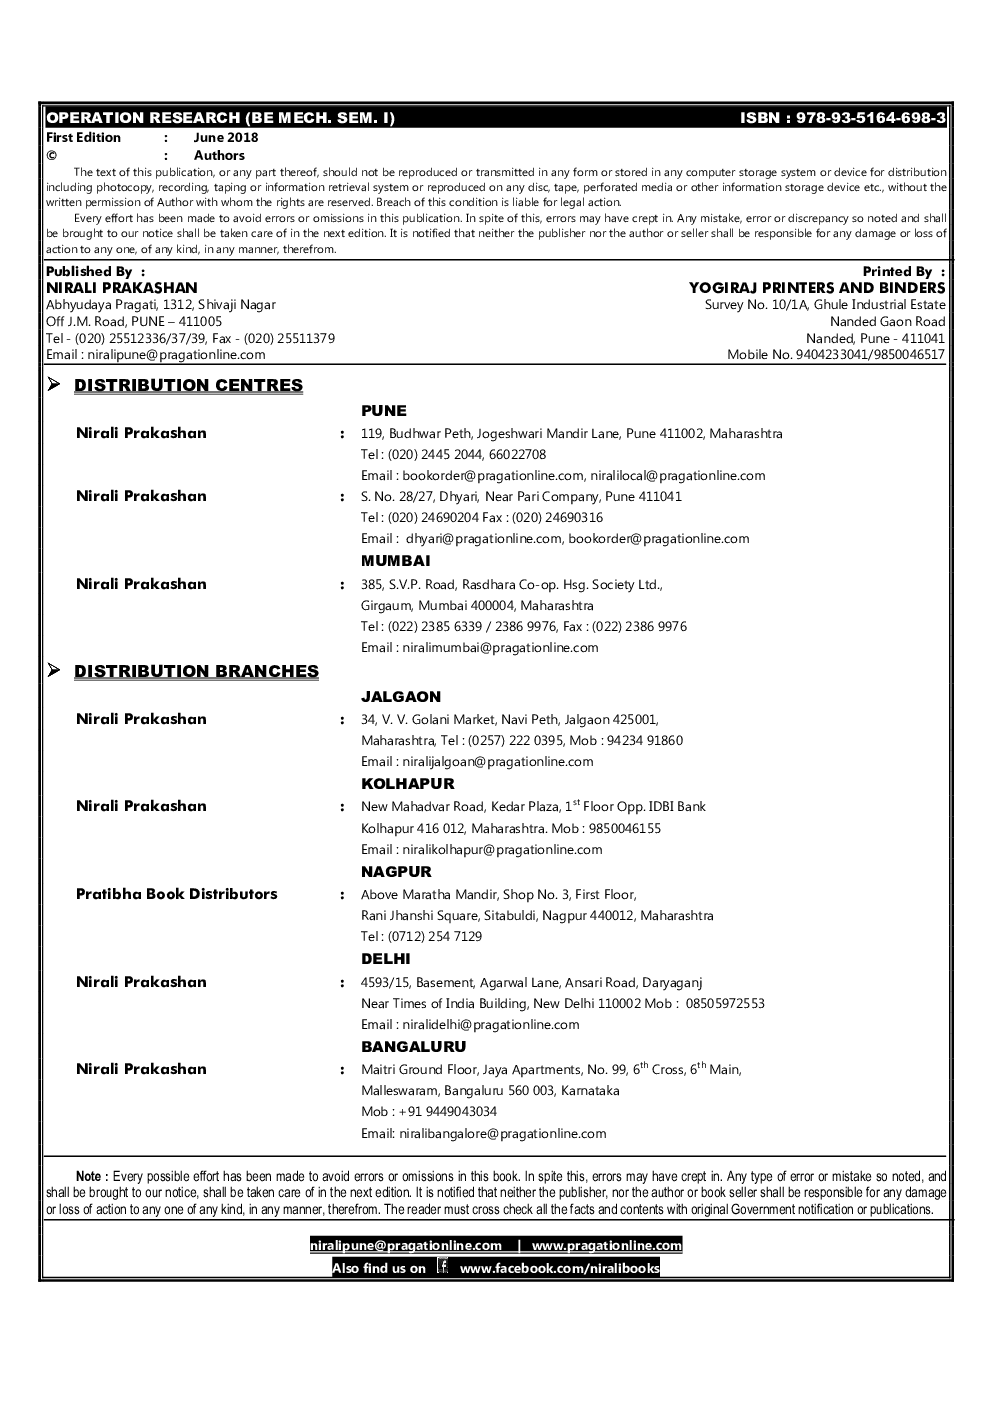 Operation Research - Page 3